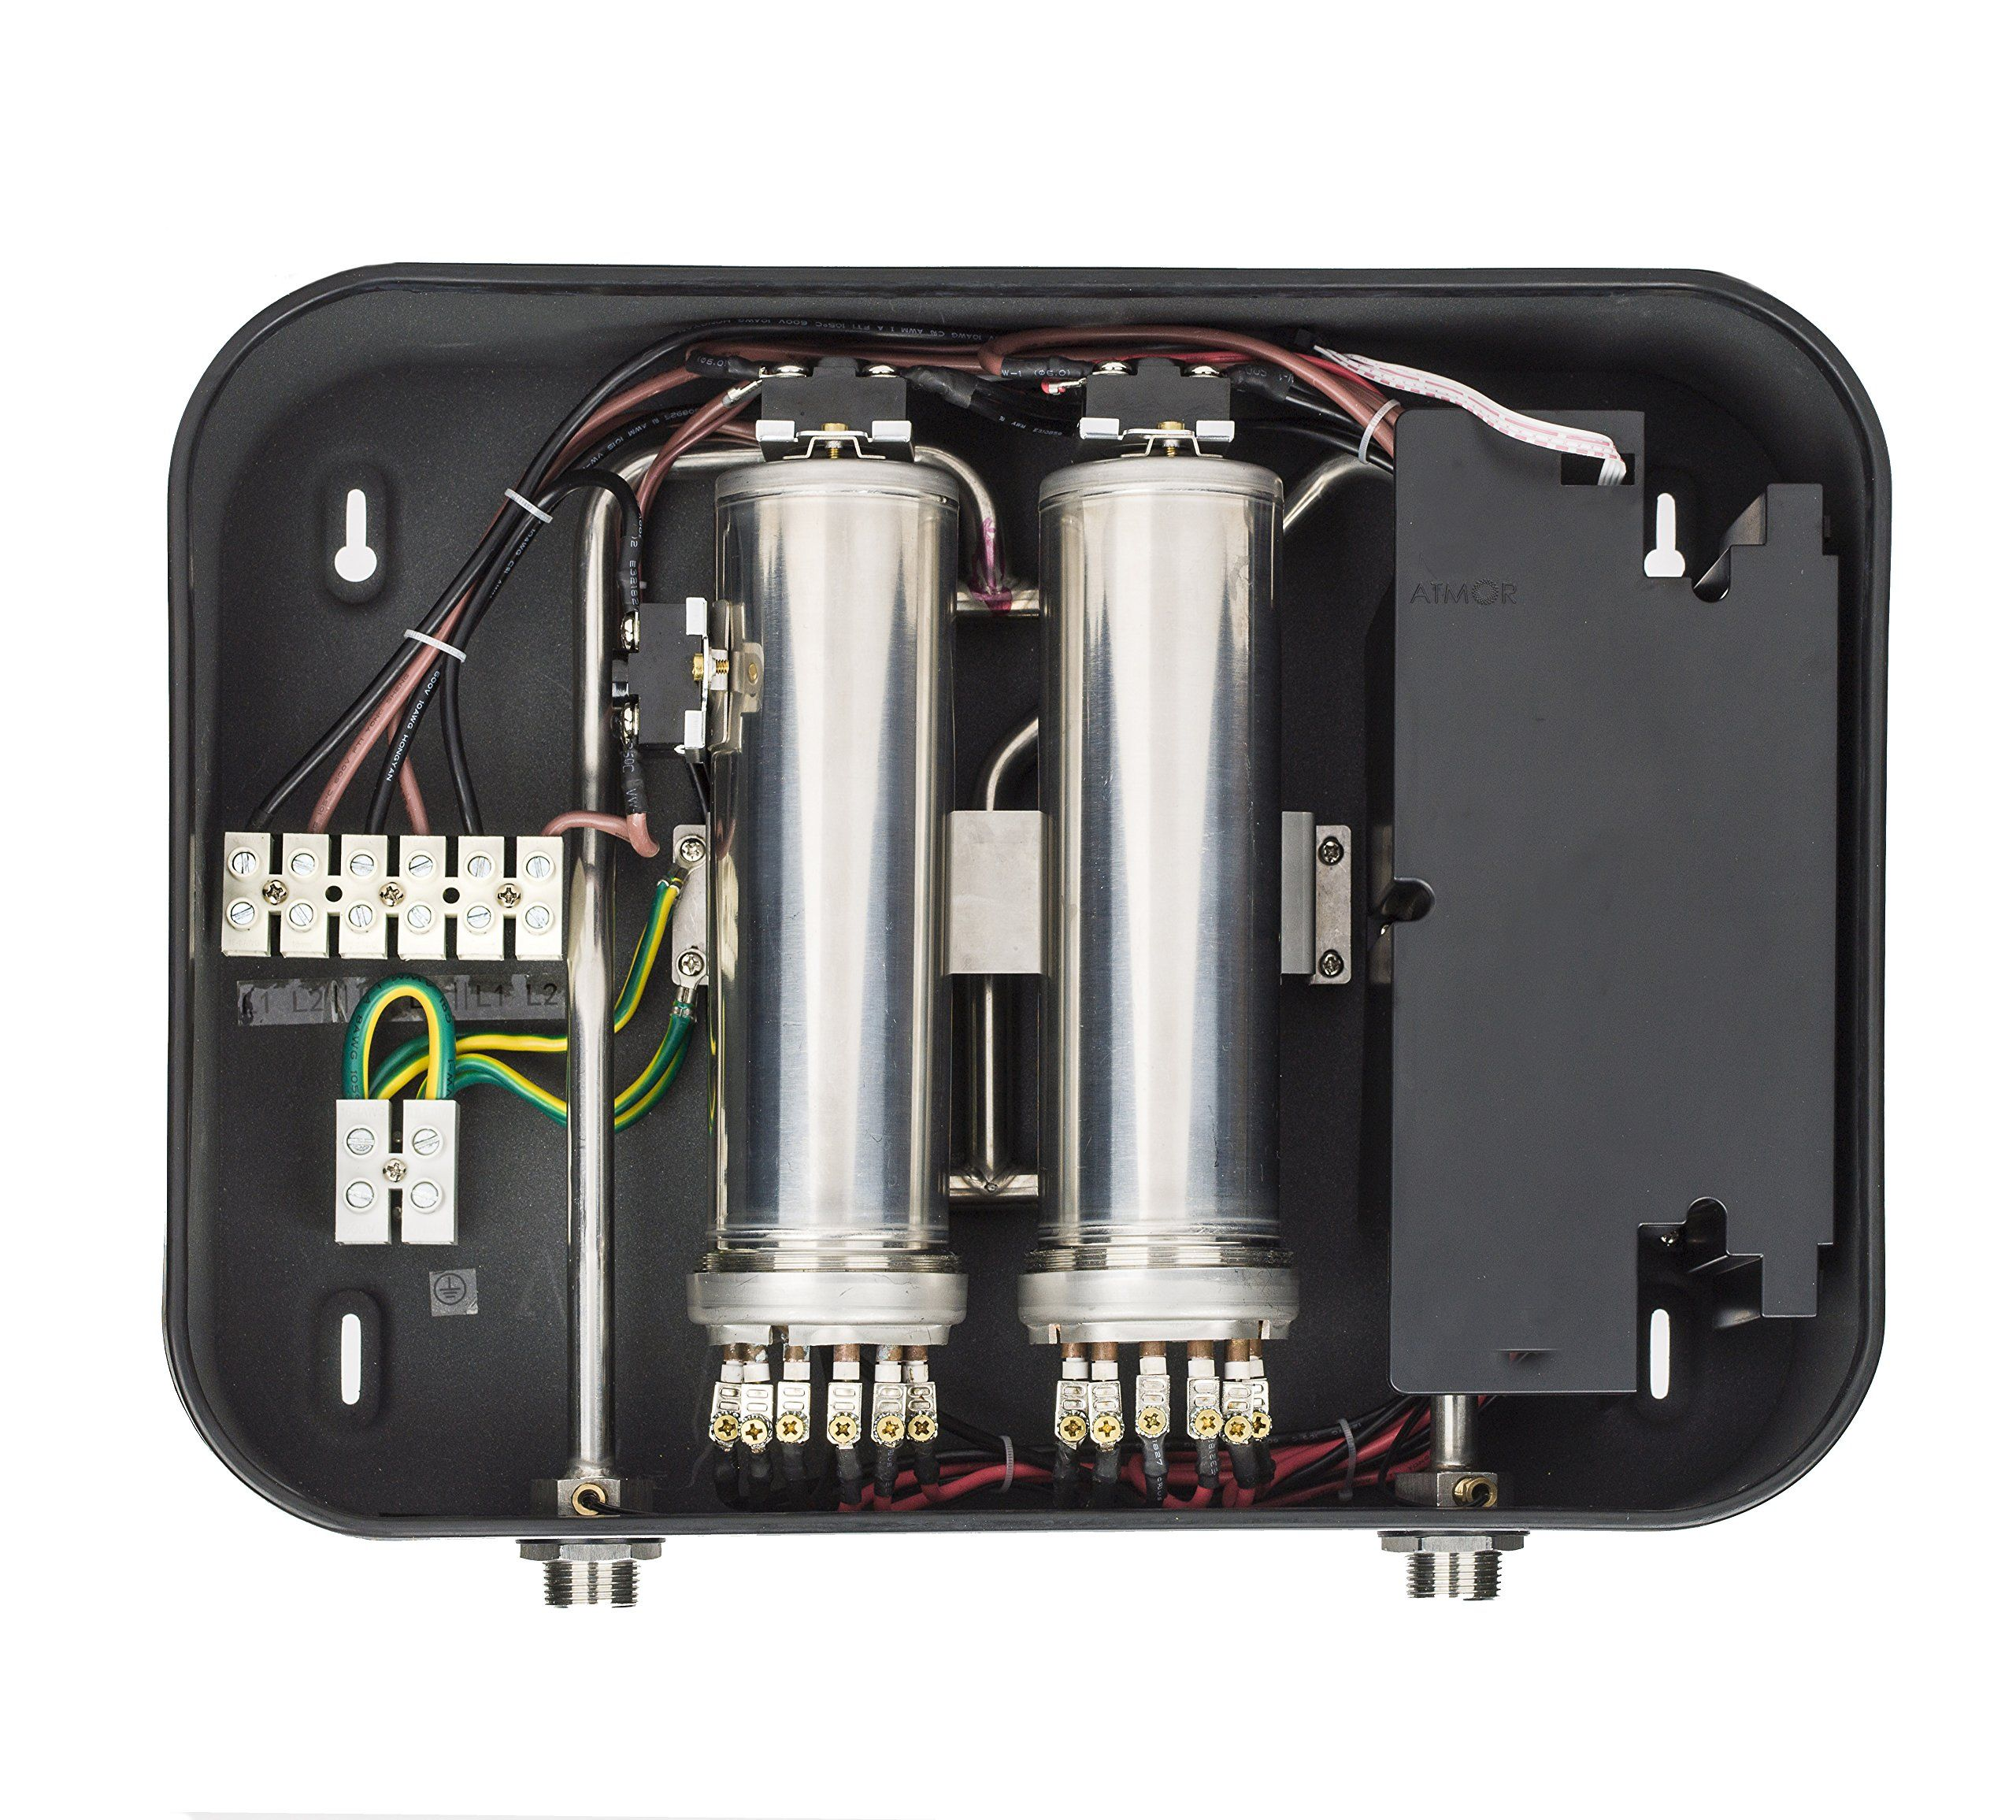 27kw 240v Electric Tankless Water Heater 5 1gpm 112 3 Amps Thermopro Series With Digital Thermostat Tankless Water Heater Instant Water Heater Hot Water Heater